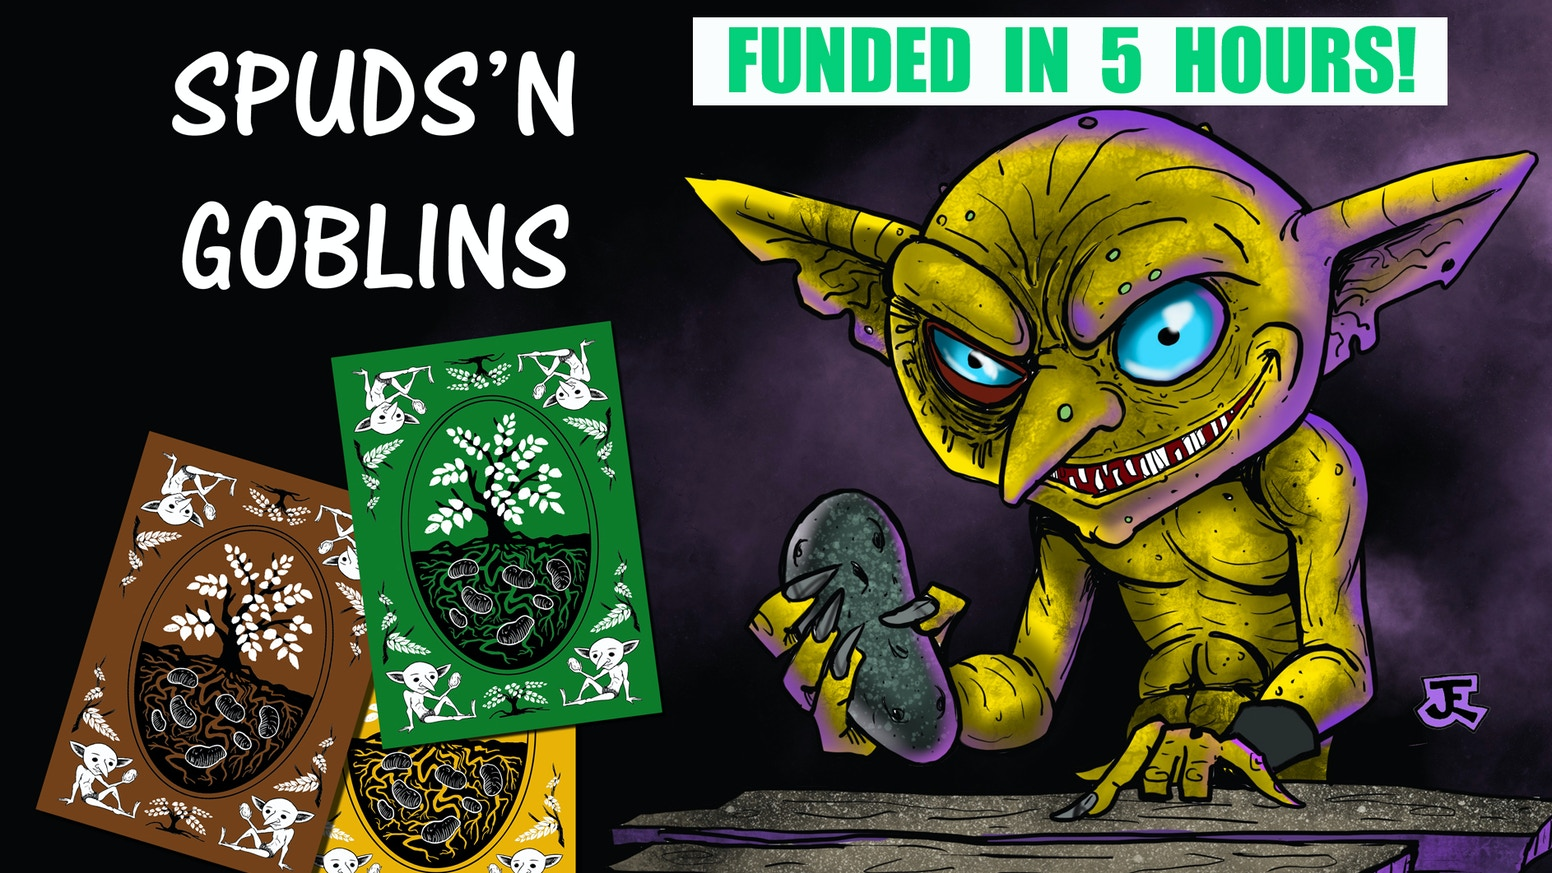 A fast-paced card game filled with hand-drawn artwork.  Help your goblins frantically gather the most potatoes before winter hits.